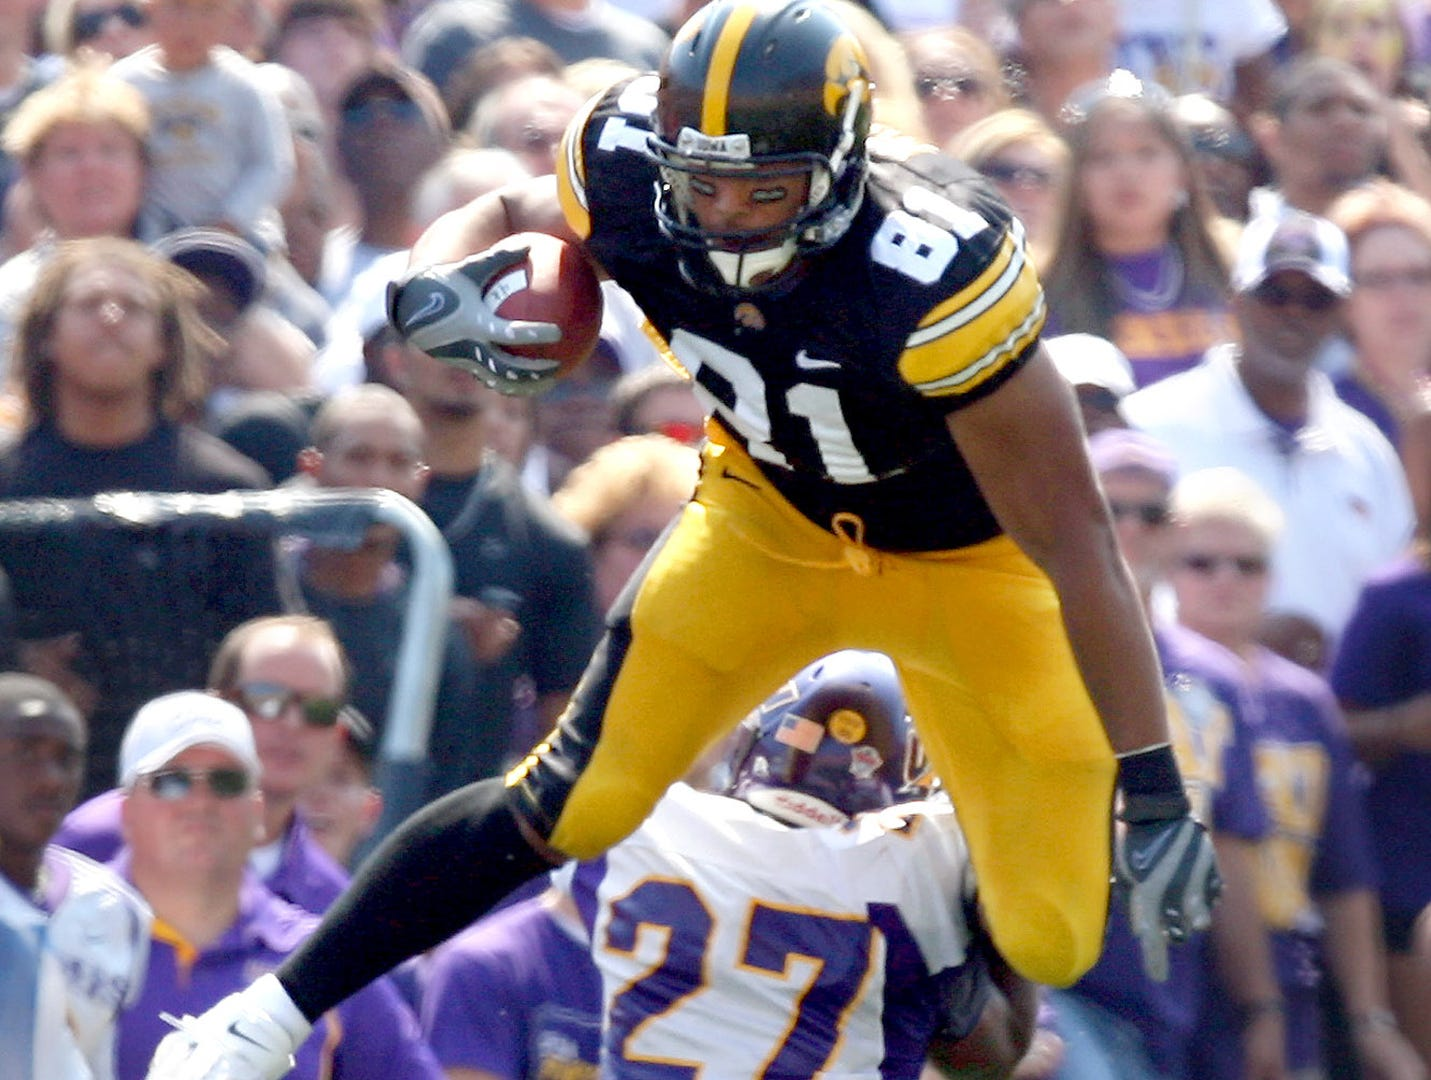 Iowa tight end Tony Moeaki (81) hurdles Northern Iowa cornerback Terrell McBride (27) after making a catch Sept. 5, 2009 in Iowa City.